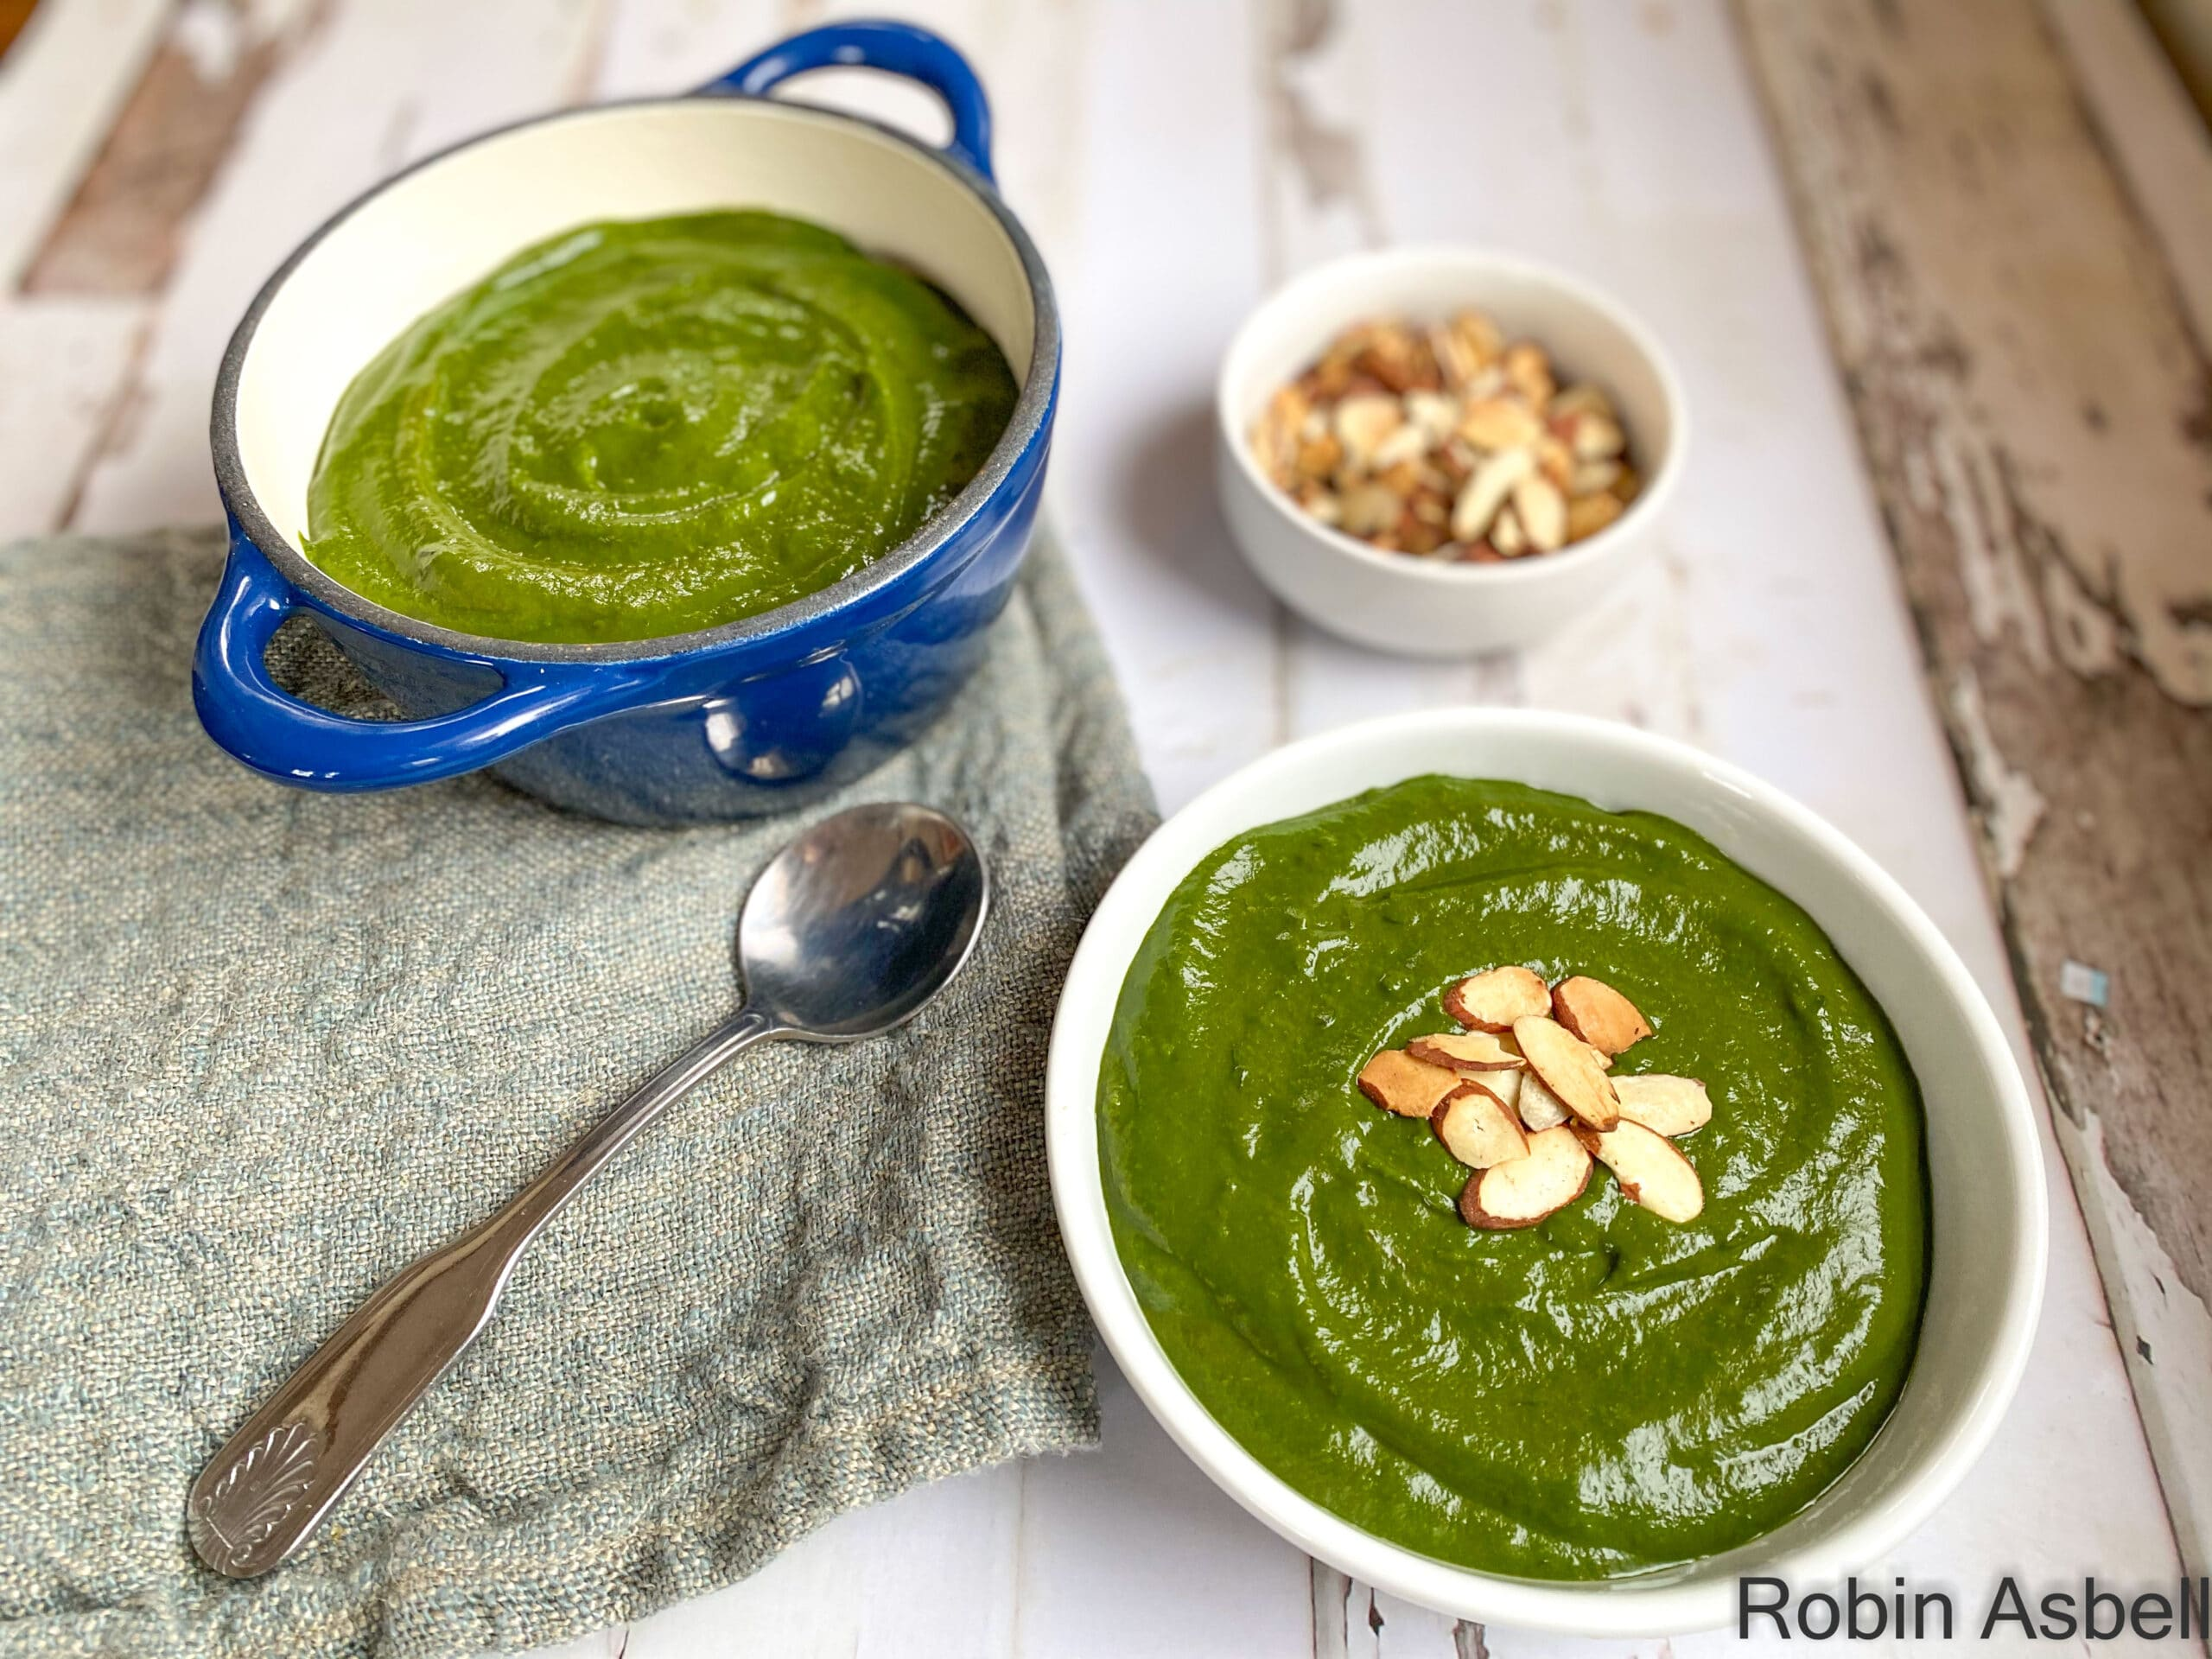 Eat More Leafy Greens with a Big Greens Soup